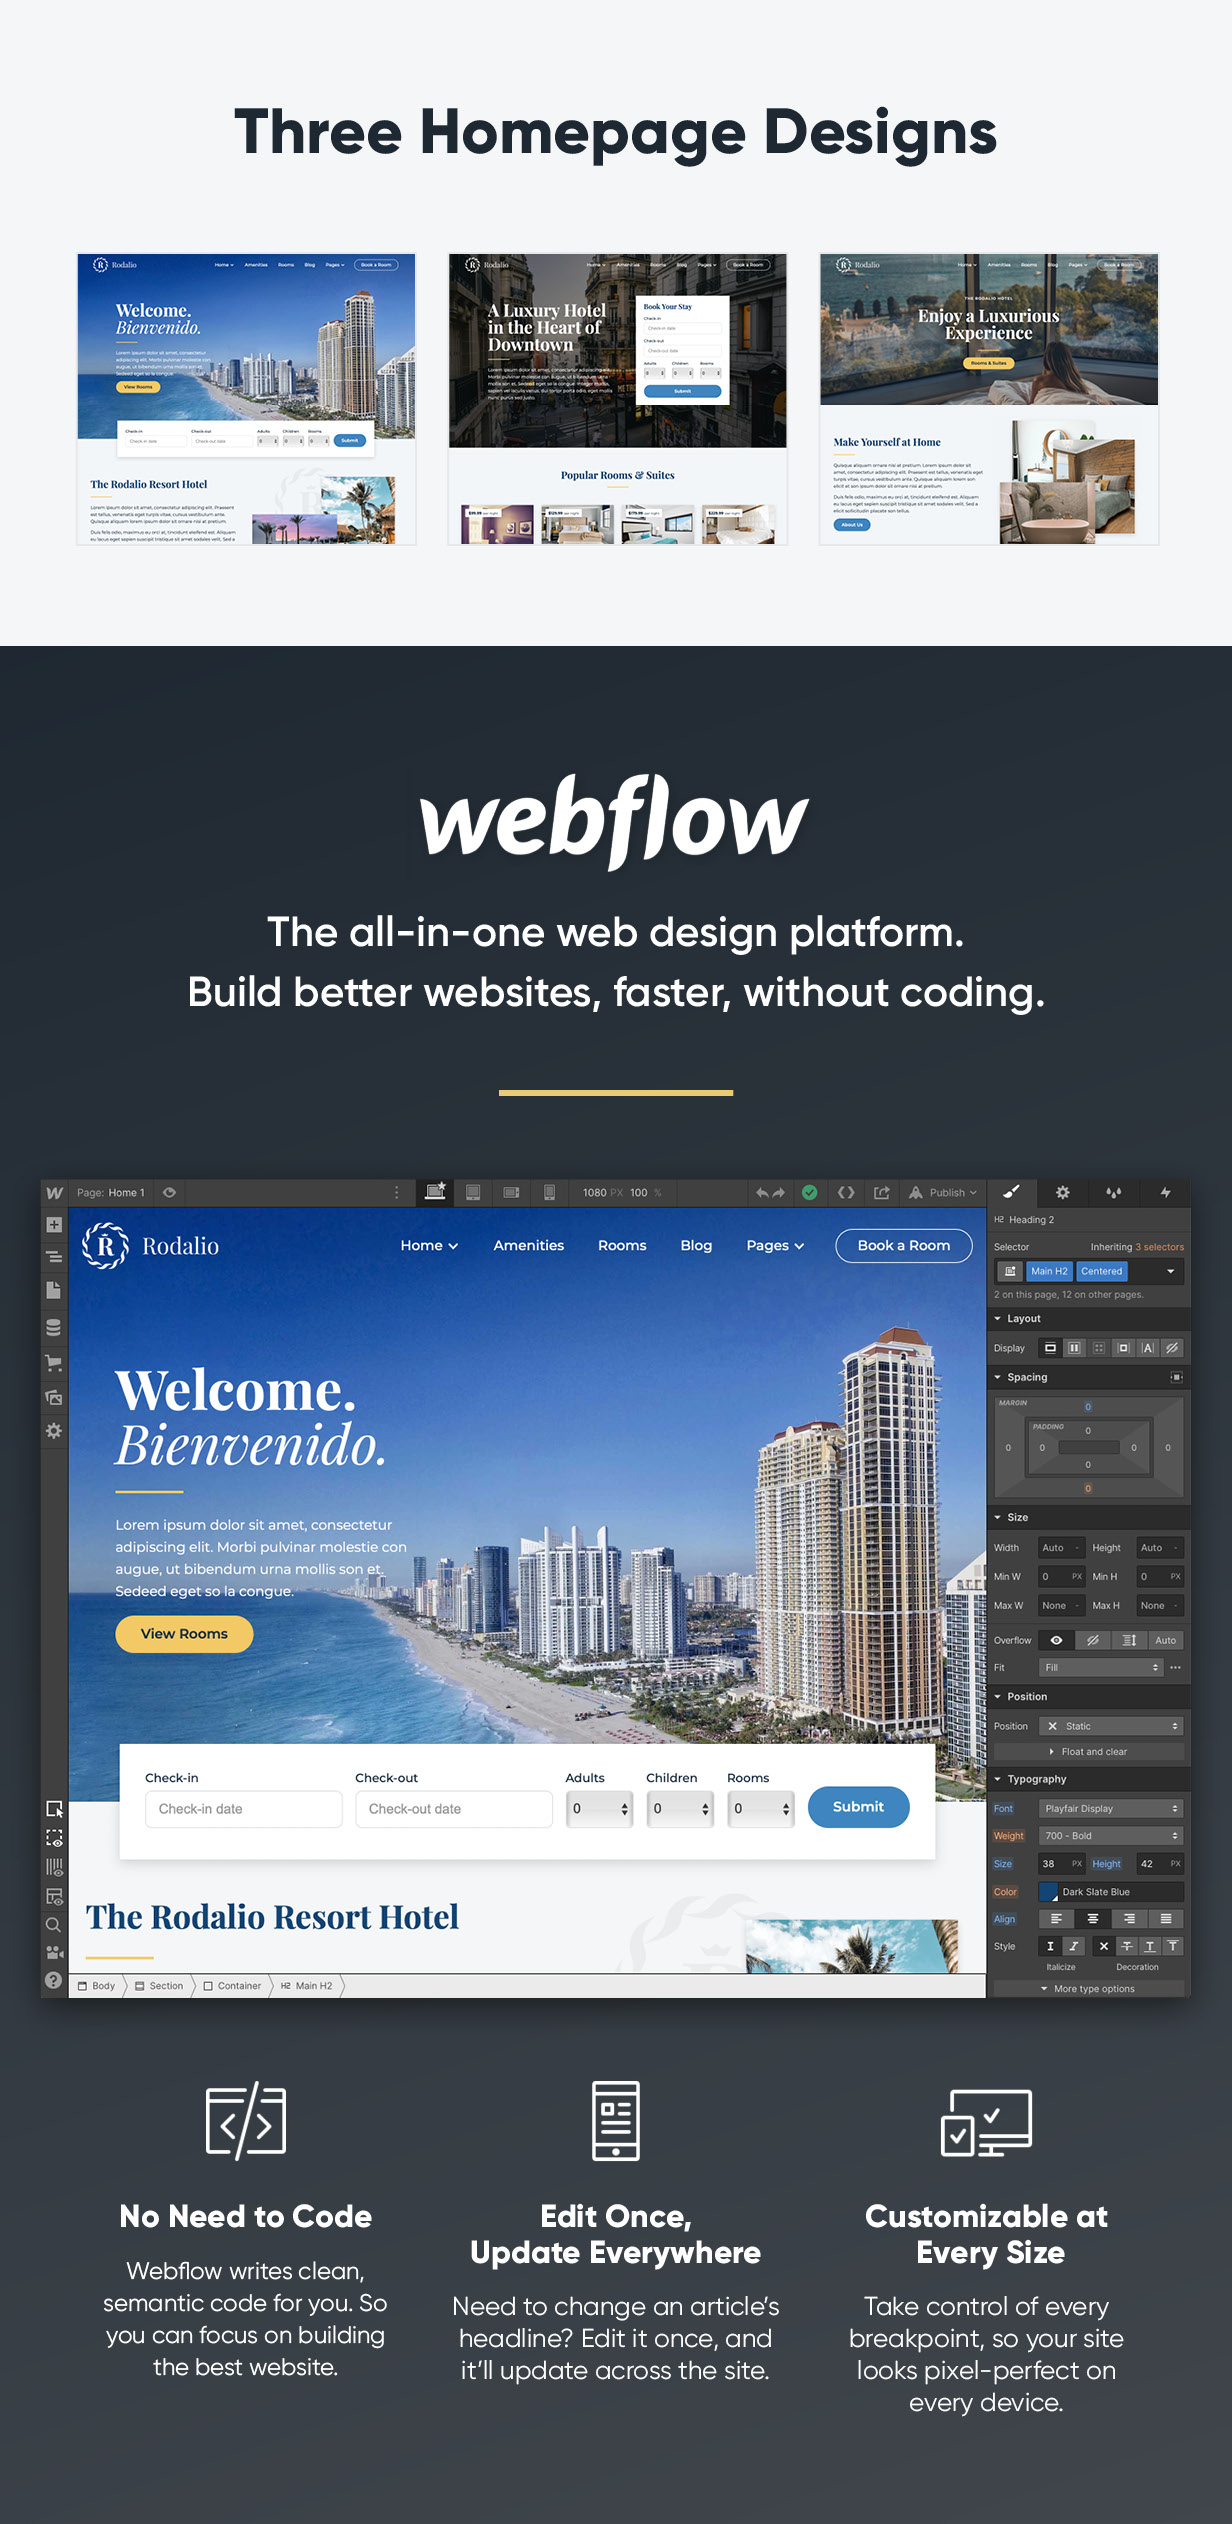 Three Homepage designs. Webflow is the all-in-one web design platform. Build better websites without code.